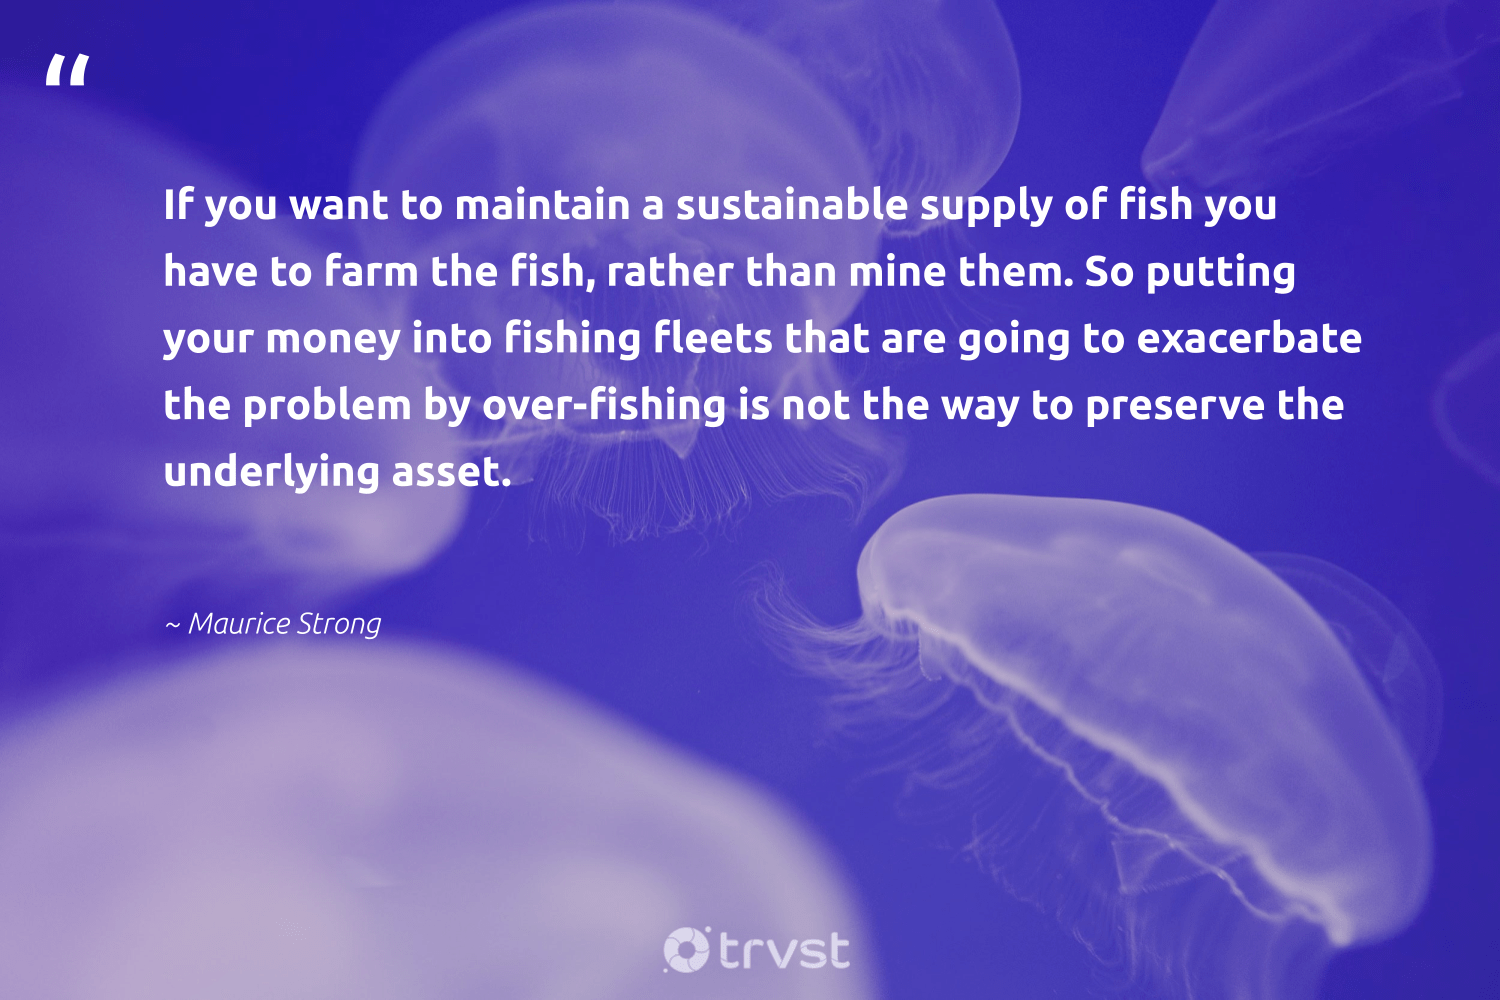 """""""If you want to maintain a sustainable supply of fish you have to farm the fish, rather than mine them. So putting your money into fishing fleets that are going to exacerbate the problem by over-fishing is not the way to preserve the underlying asset.""""  - Maurice Strong #trvst #quotes #sustainable #fishing #fish #sustainableliving #conservation #fashion #gogreen #sustainability #wildlifeprotection #green"""